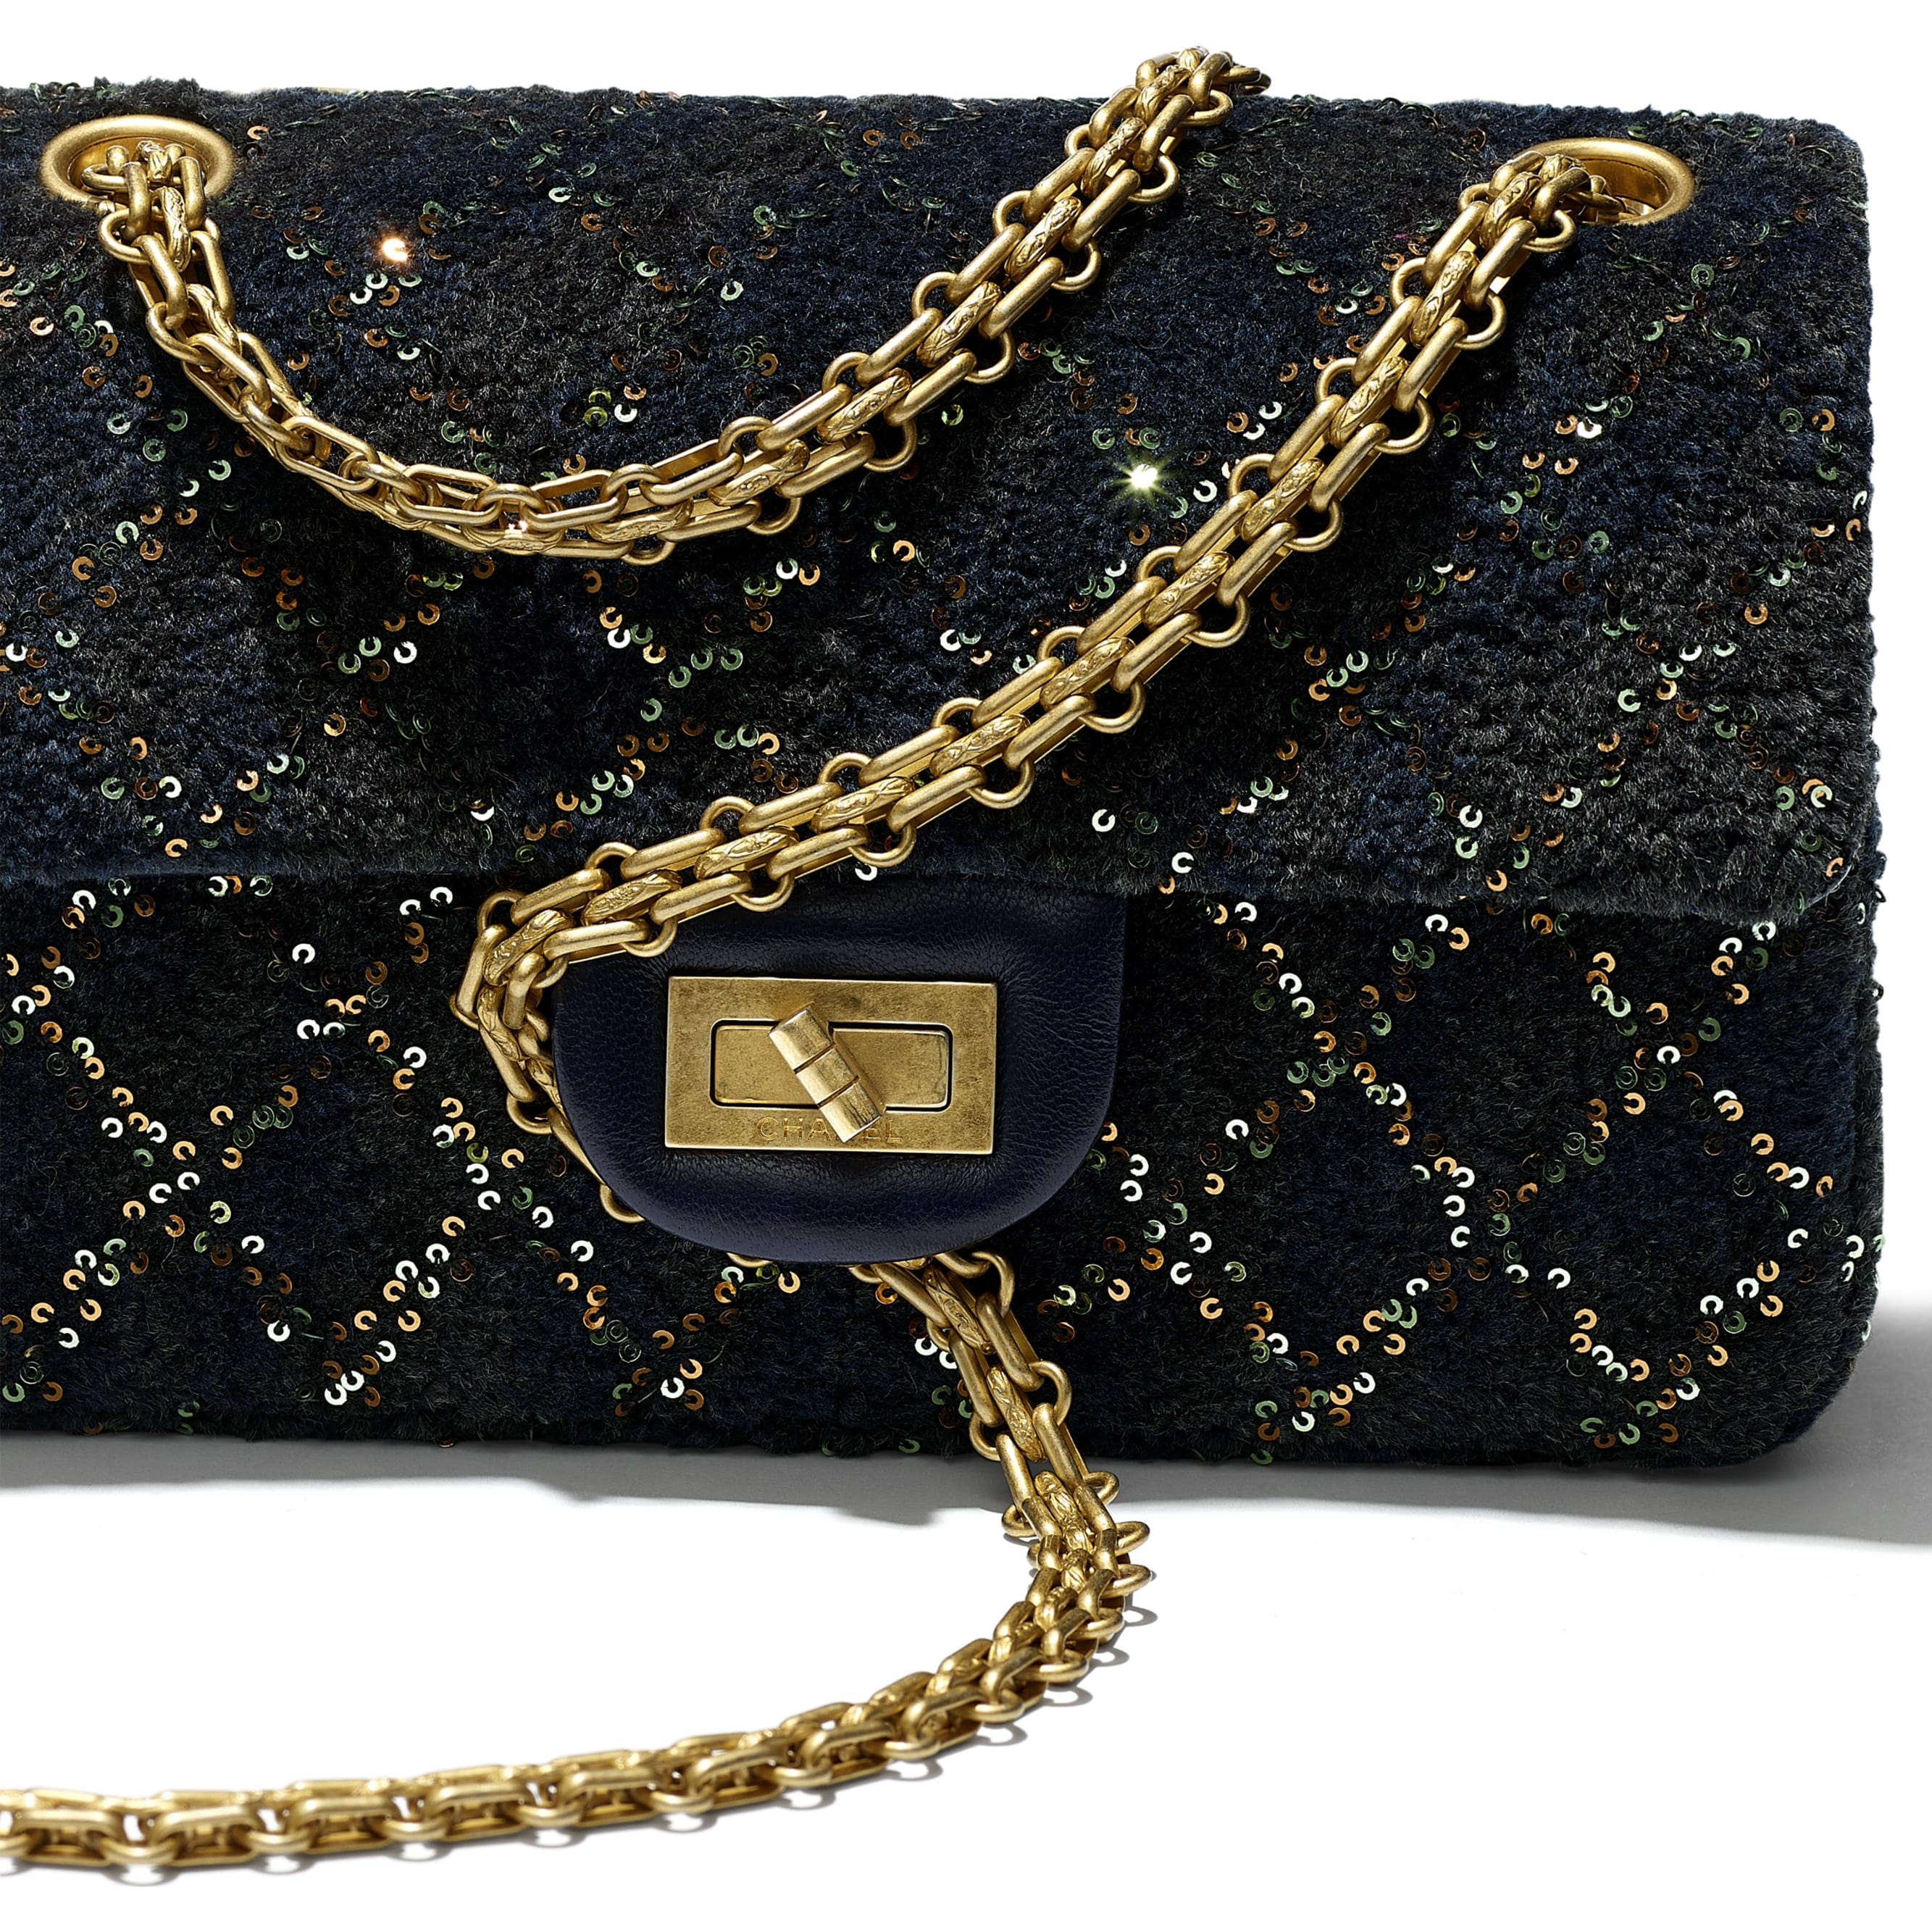 Small 2.55 Handbag - Navy Blue - Wool, Mixed Fibers, Sequins & Gold-Tone Metal - CHANEL - Extra view - see standard sized version